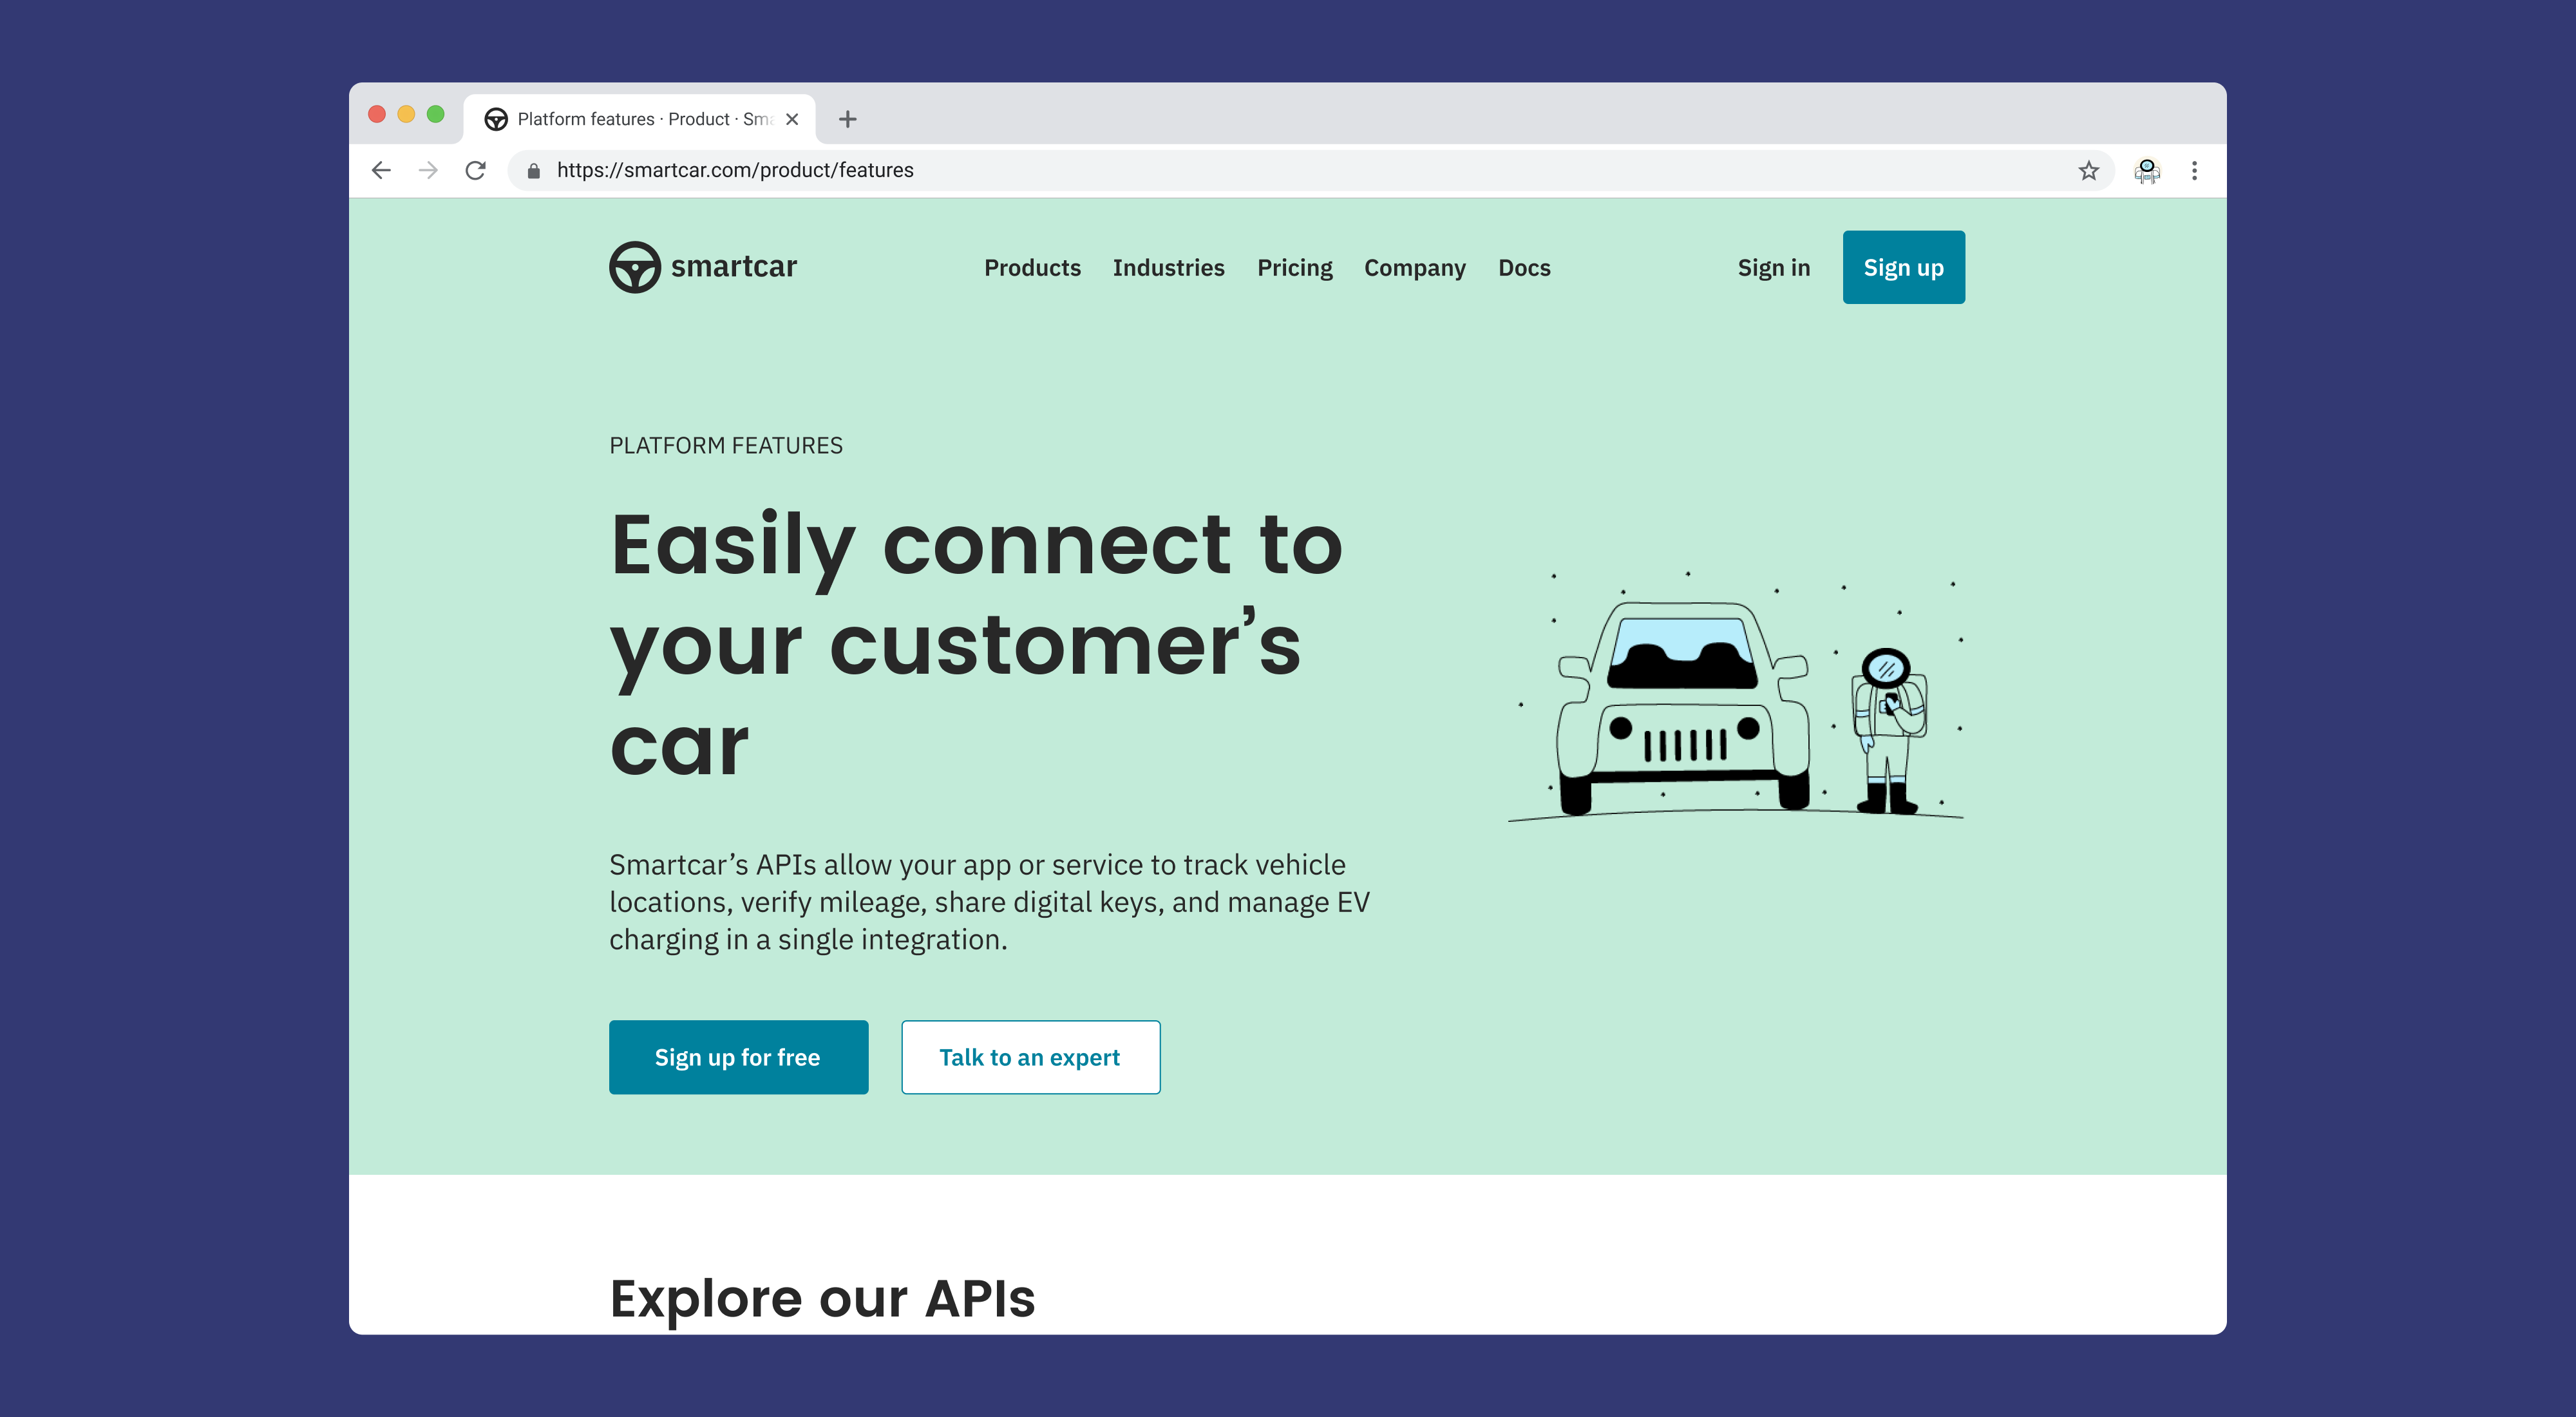 Screenshot of the Smartcar website showing the header of the product features page with a line drawing of an astronaut holding a phone and standing next to a car.